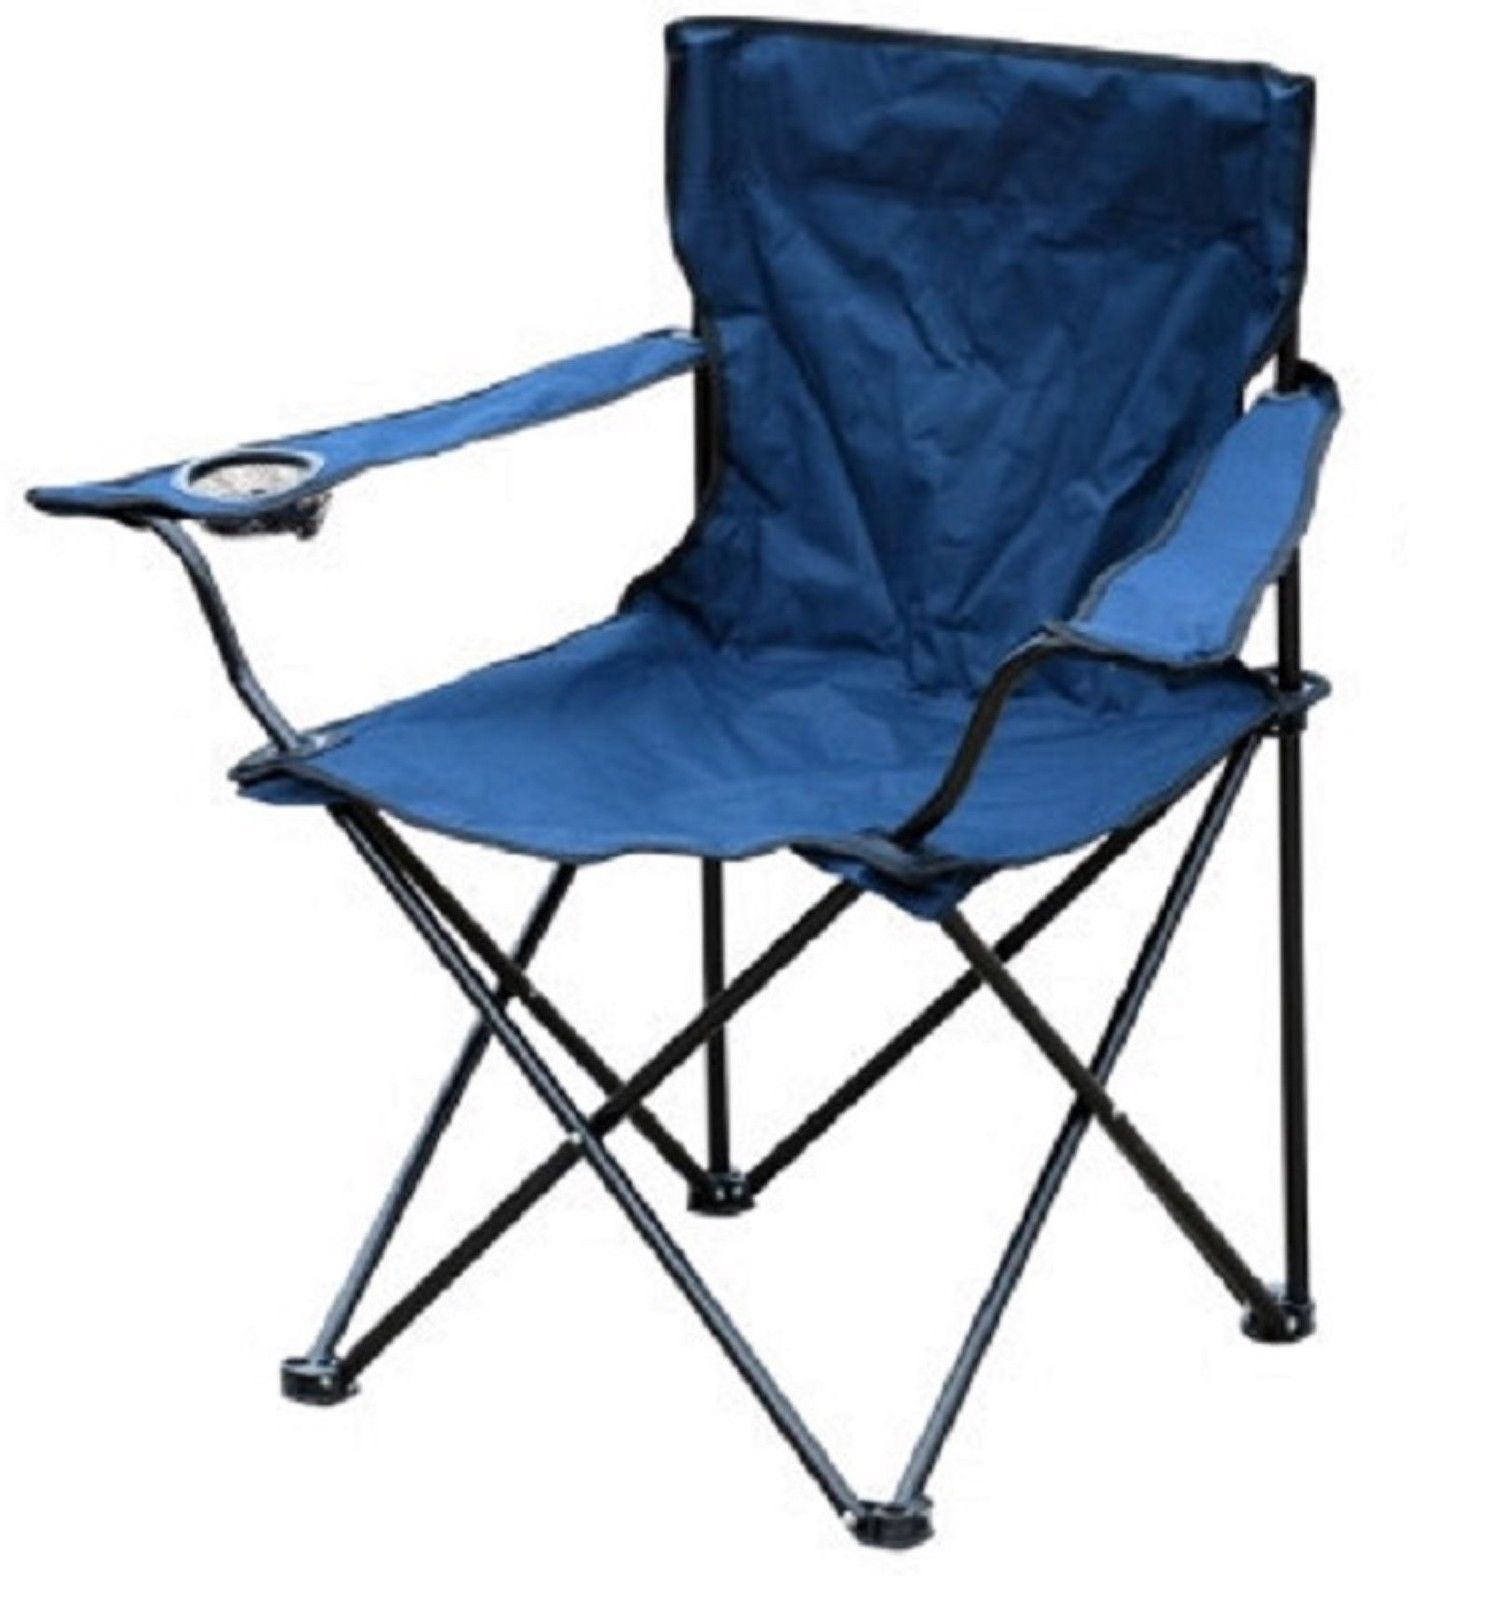 BRAND NEW LIGHTWEIGHT PORTABLE OUTDOOR CAMPING GARDEN